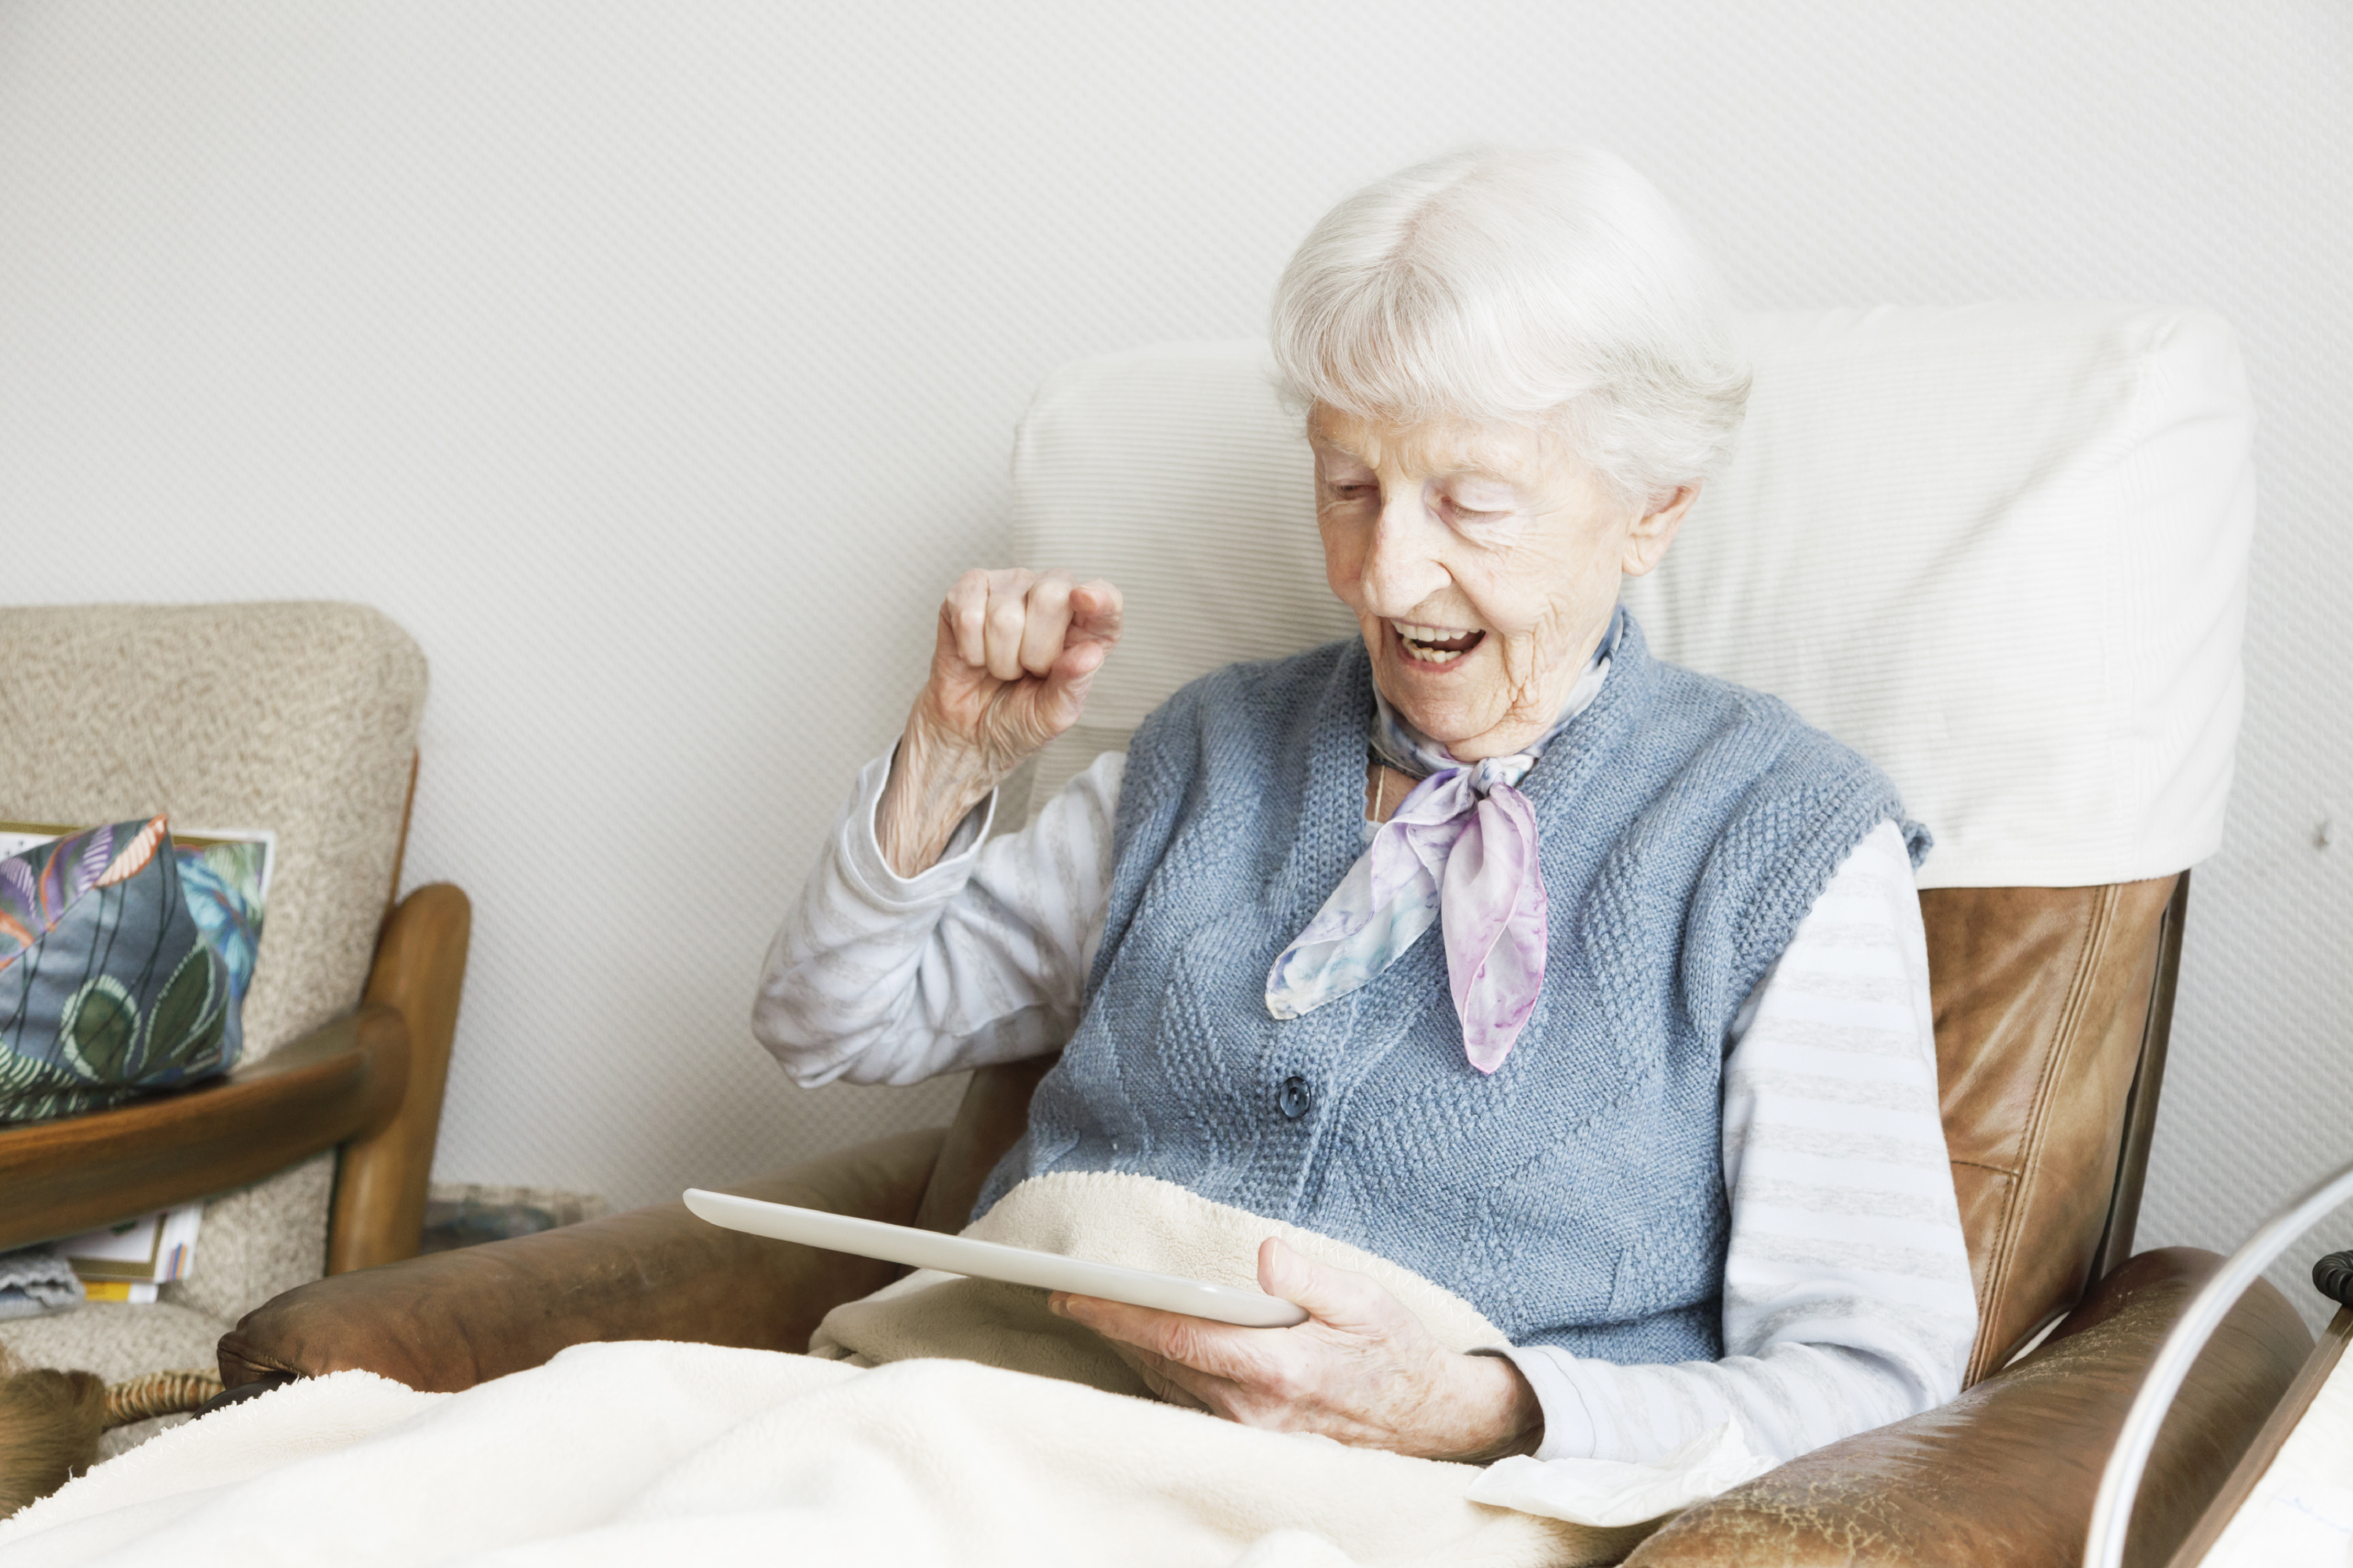 Elderly woman using an e-tablet